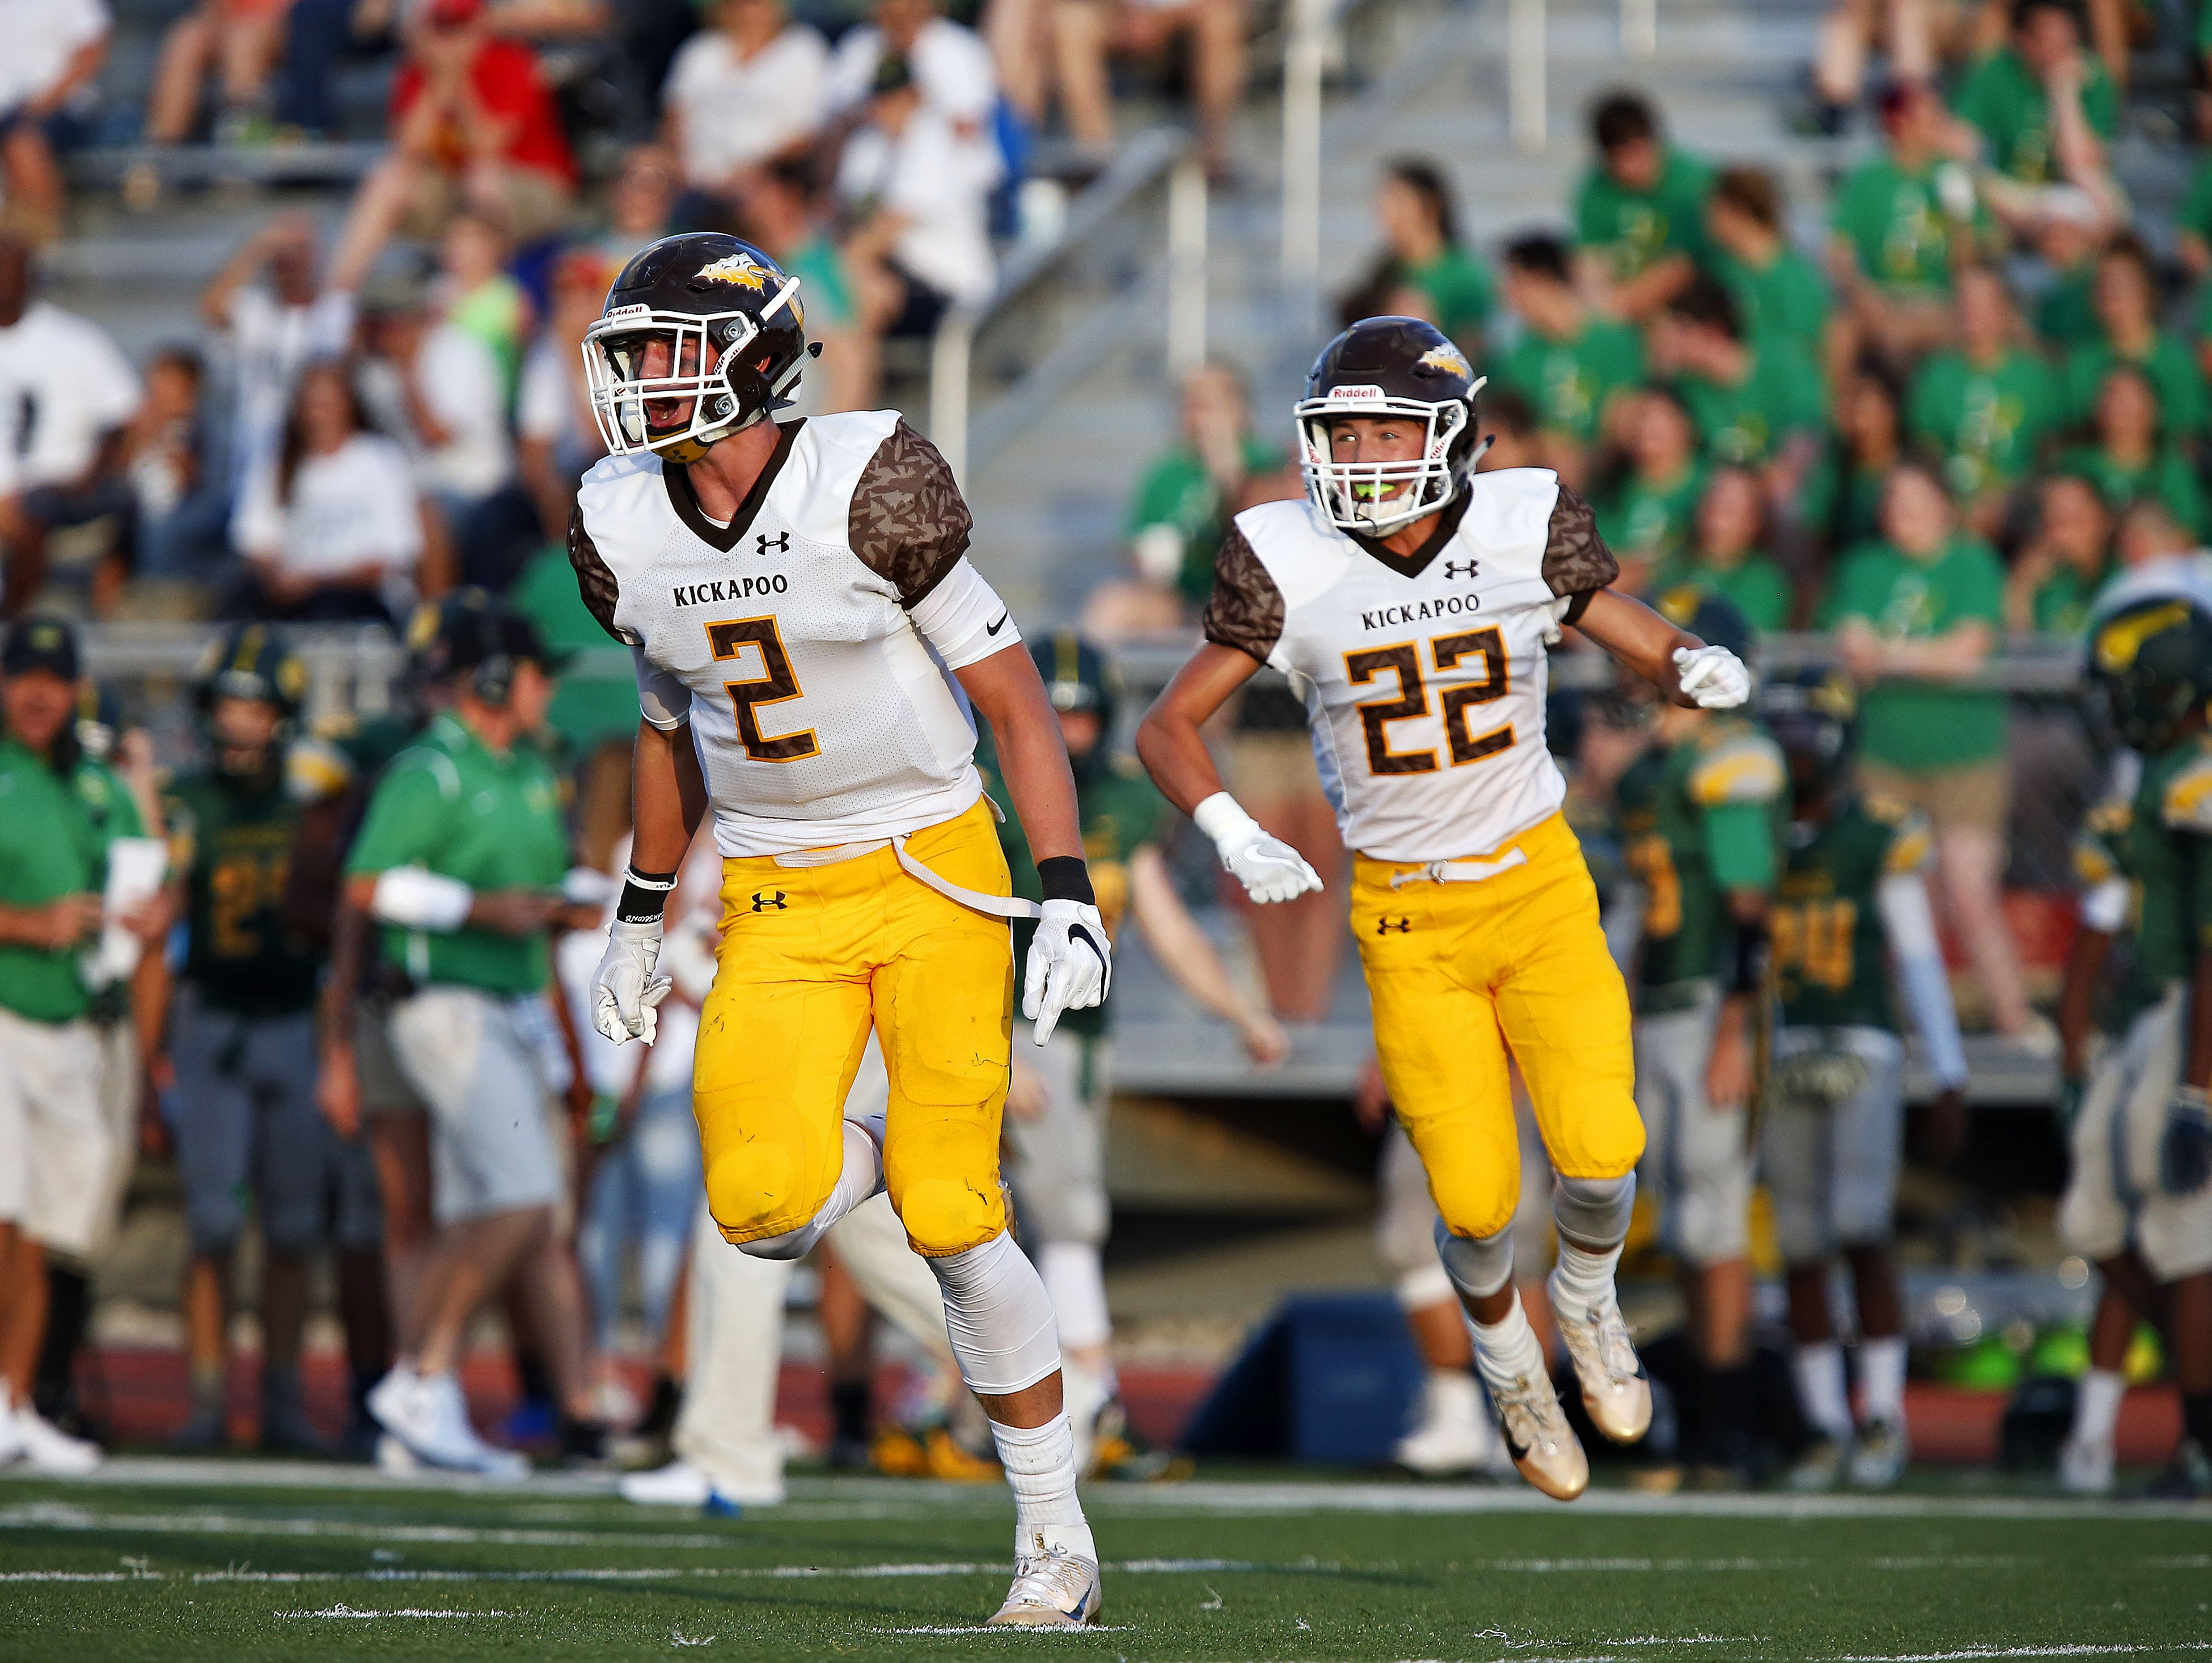 Kickapoo High School linebacker Travis Vokolek (2) and safety Cole McCarville (22) celebrate after the Chiefs defense forced a turnover during a 2016 game against Parkview. The Chiefs are 4-0 and hold the top spot in Class 6 District 4.